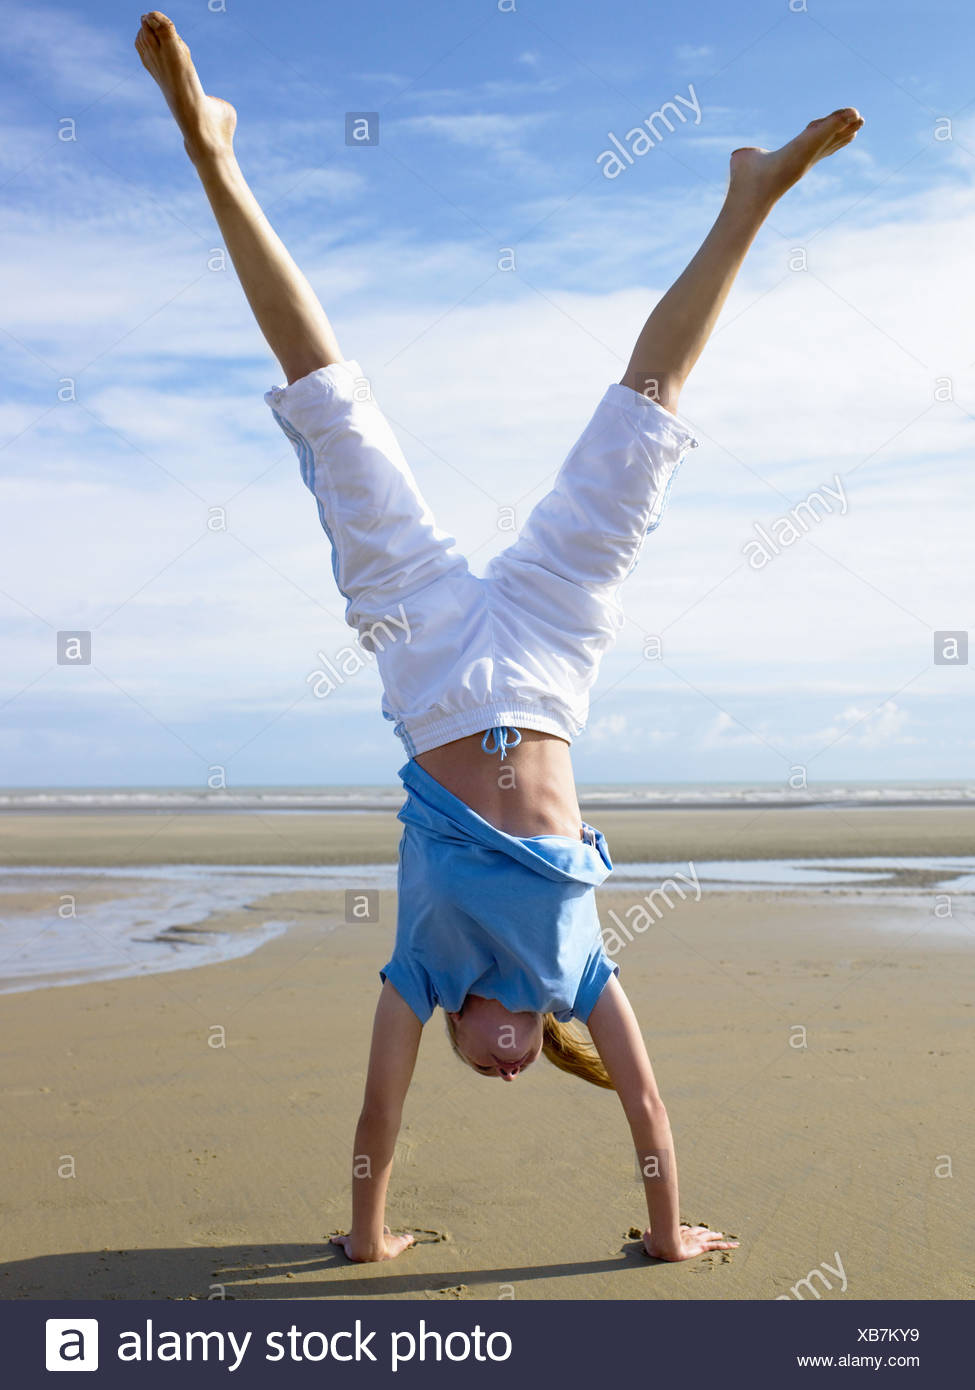 Woman doing a handstand on the beach - Stock Image